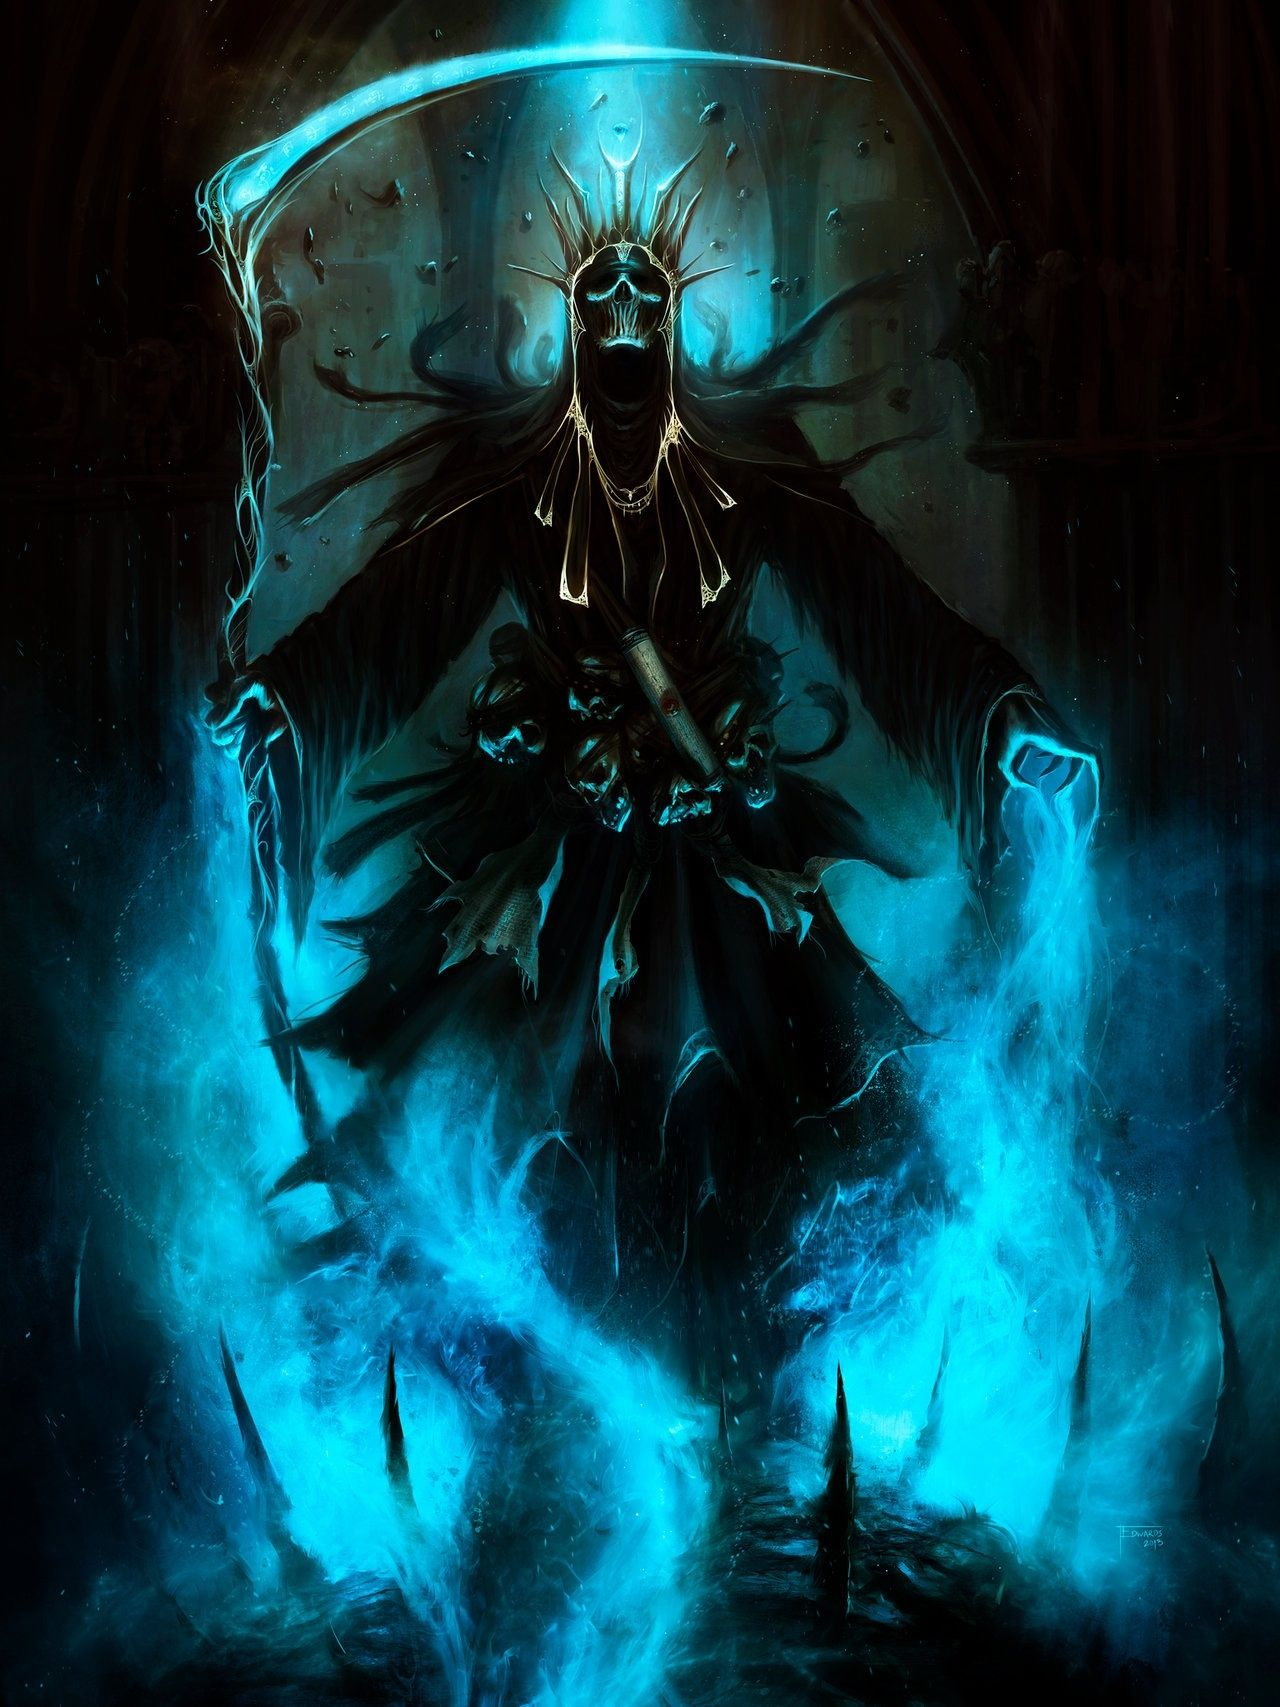 Free Grim Reaper Wallpapers Wallpaper Grim reaper art